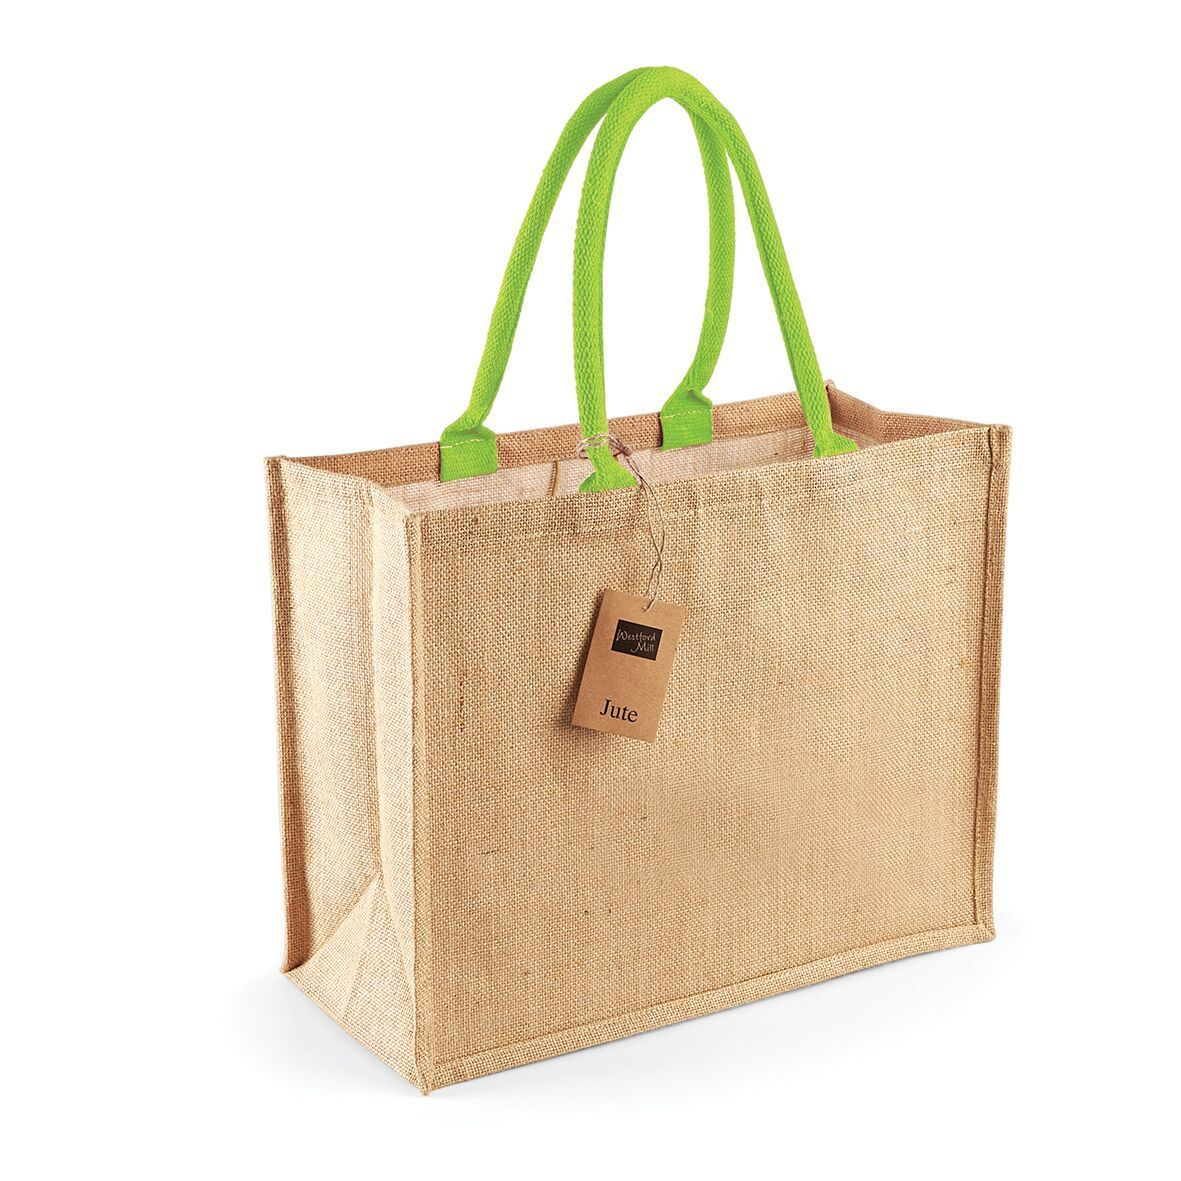 New Classic Jute Tote Natural Shopper Shoulder Bag